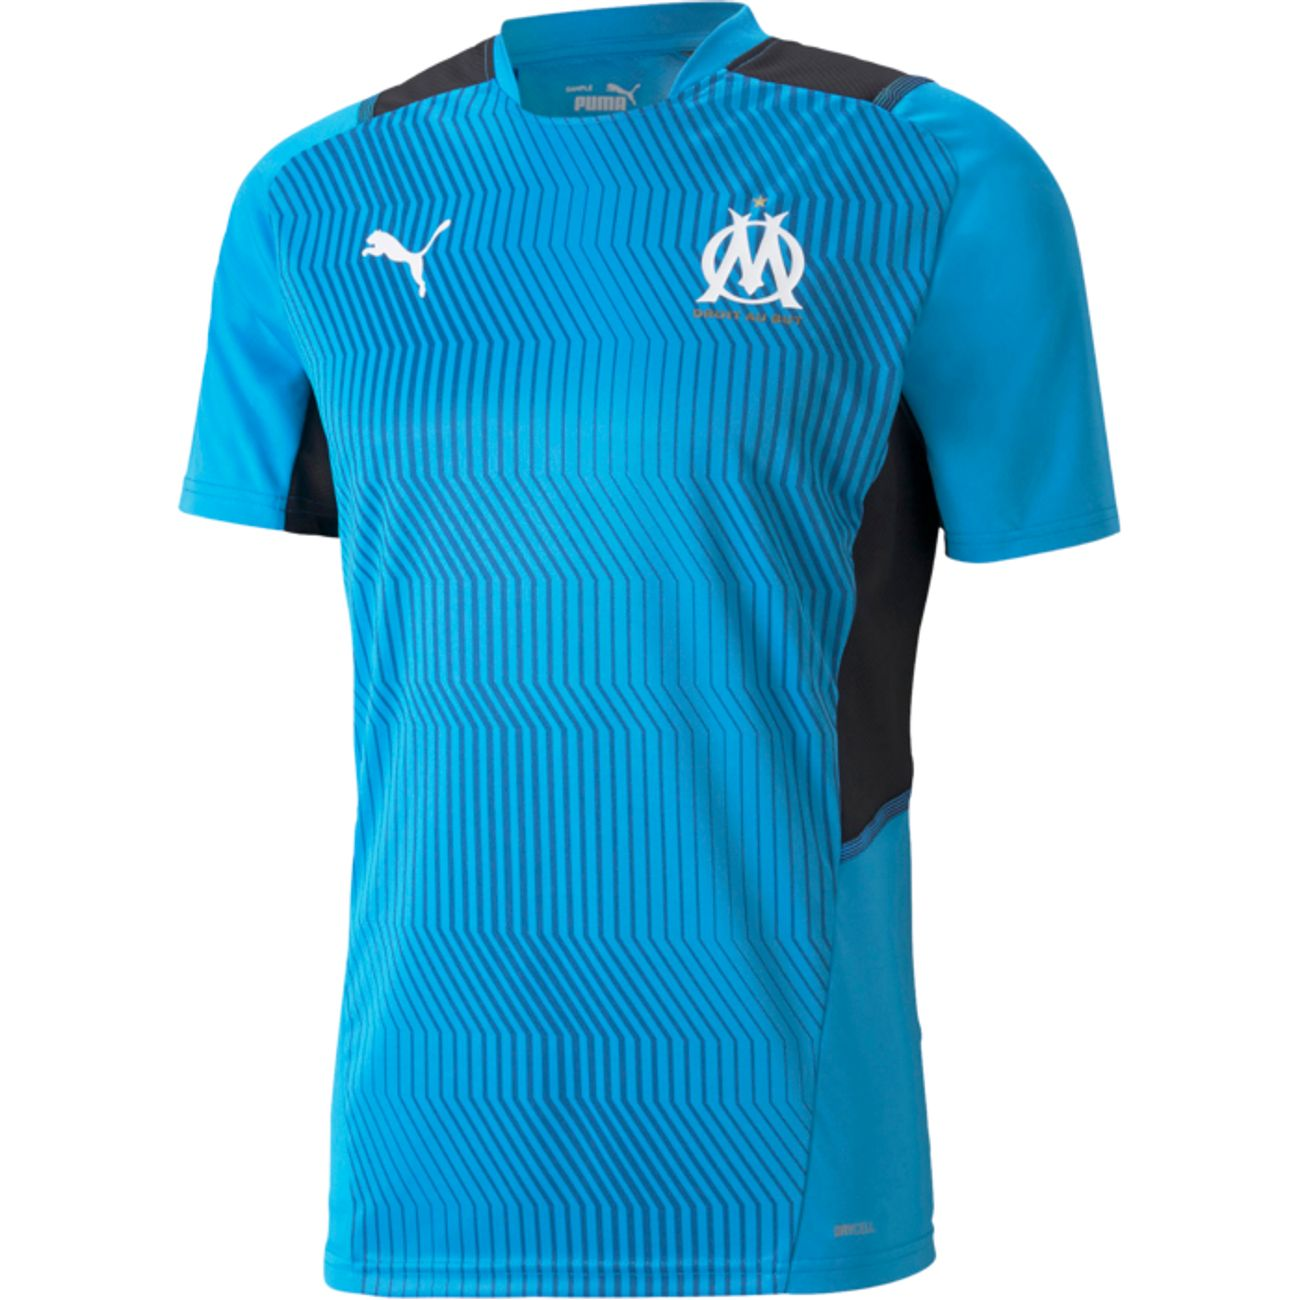 MAILLOT  homme PUMA OM JERSEY 2021-2022